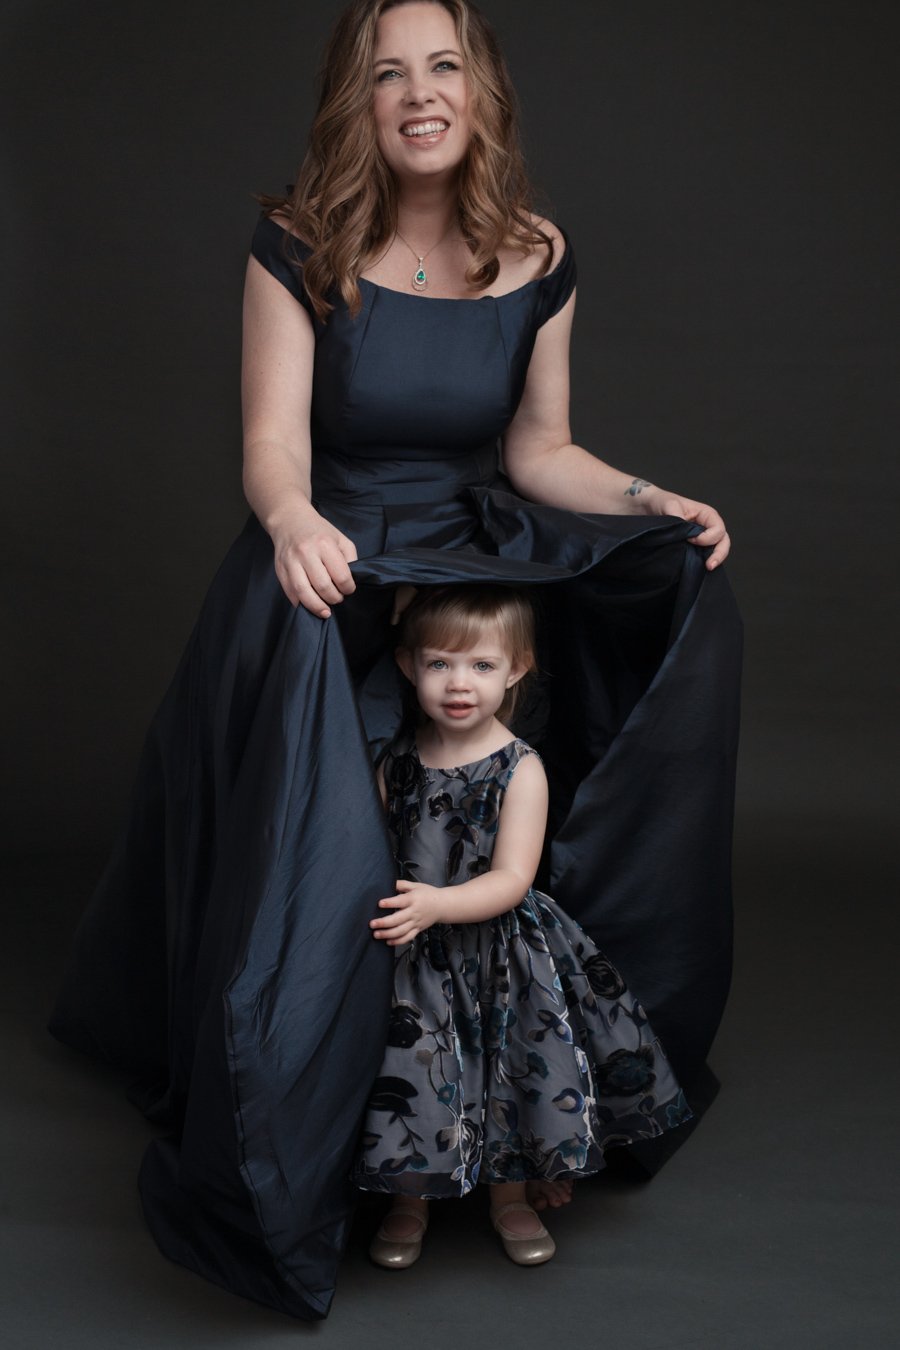 anna_kraft_photography_georgetown_square_studio_family_portrait_austin_photo-3.jpg